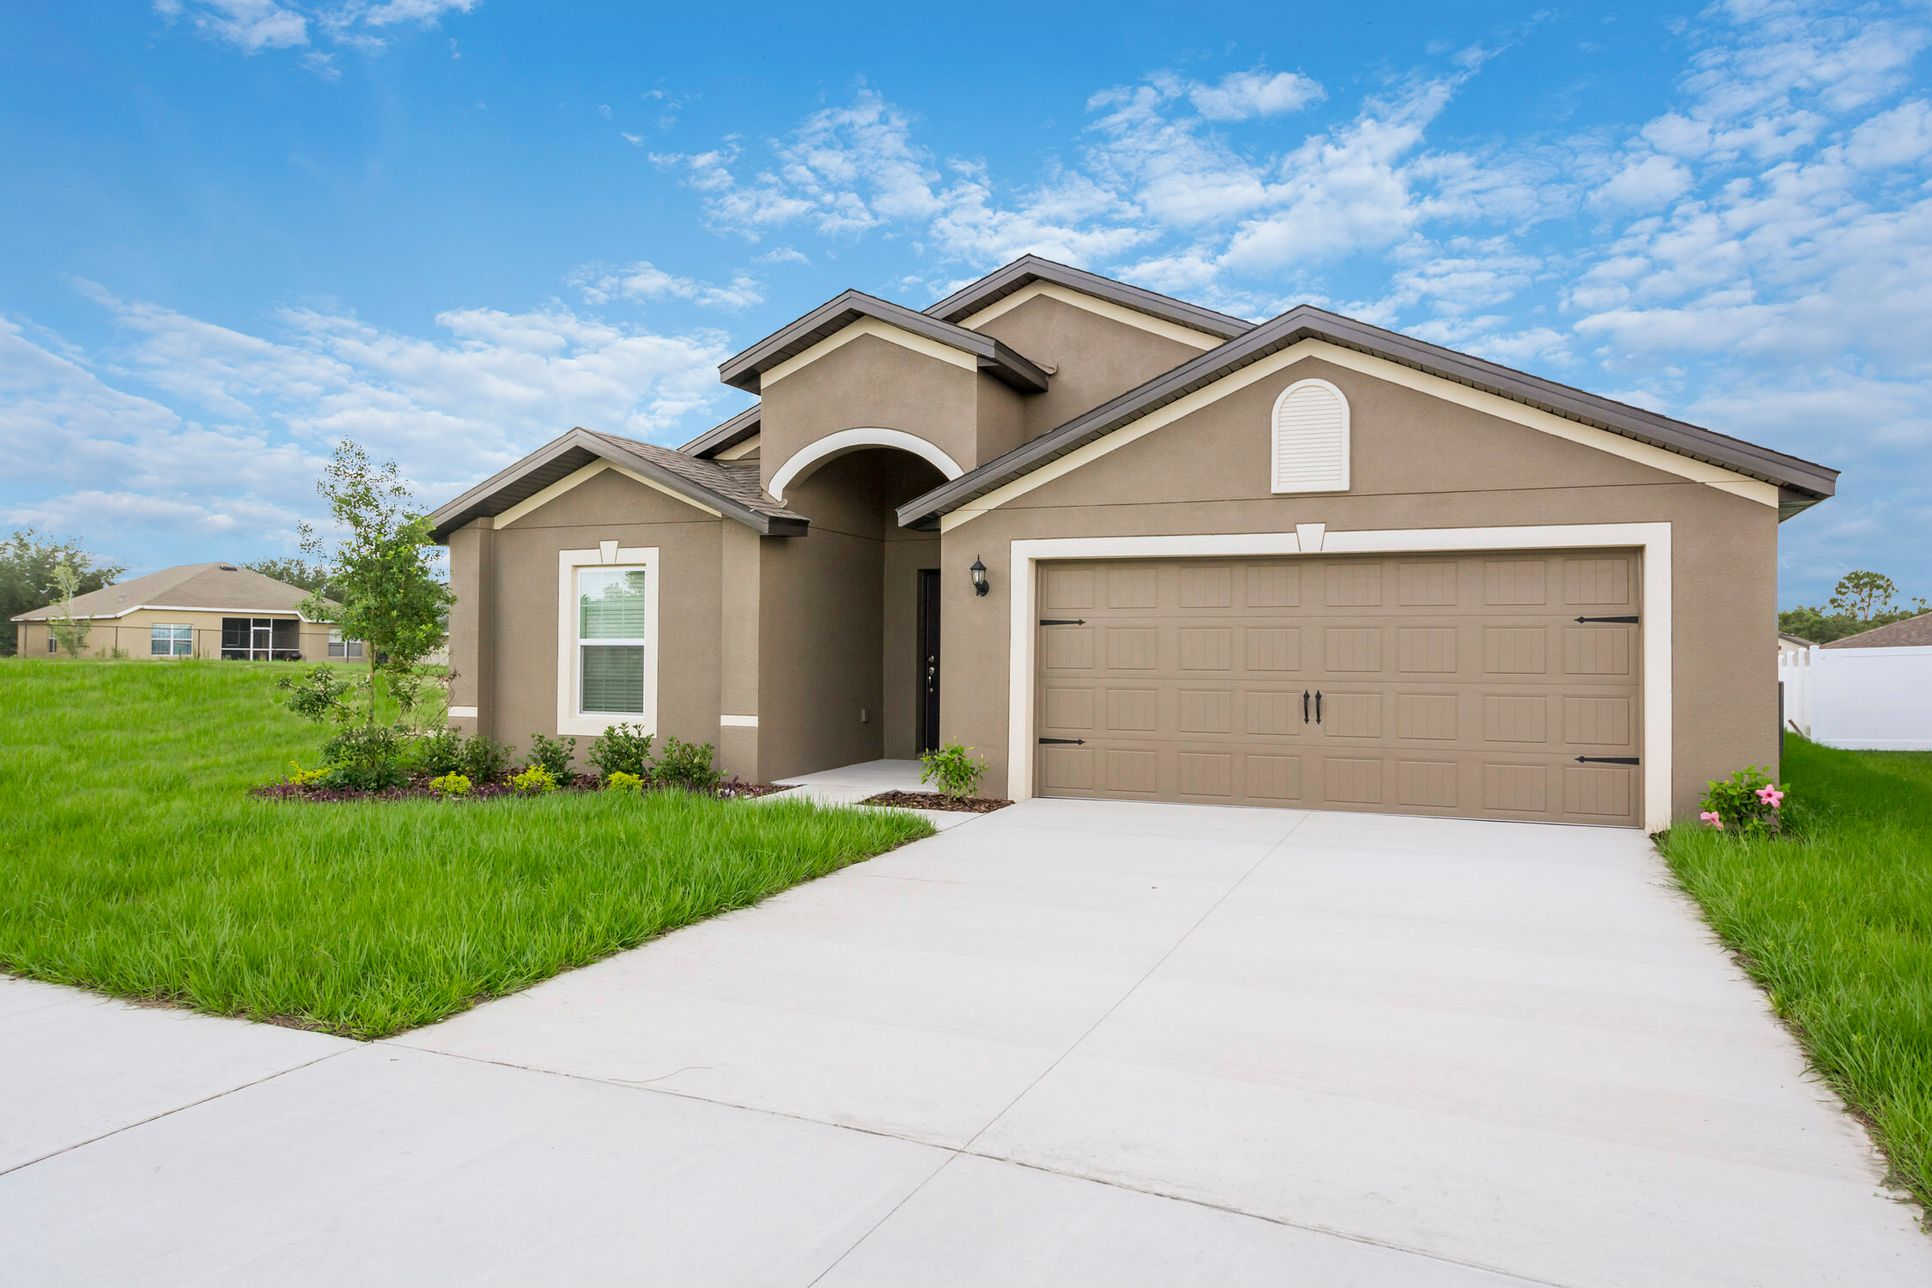 The Estero by LGI Homes:Located in the highly-desirable city of Palm Bay